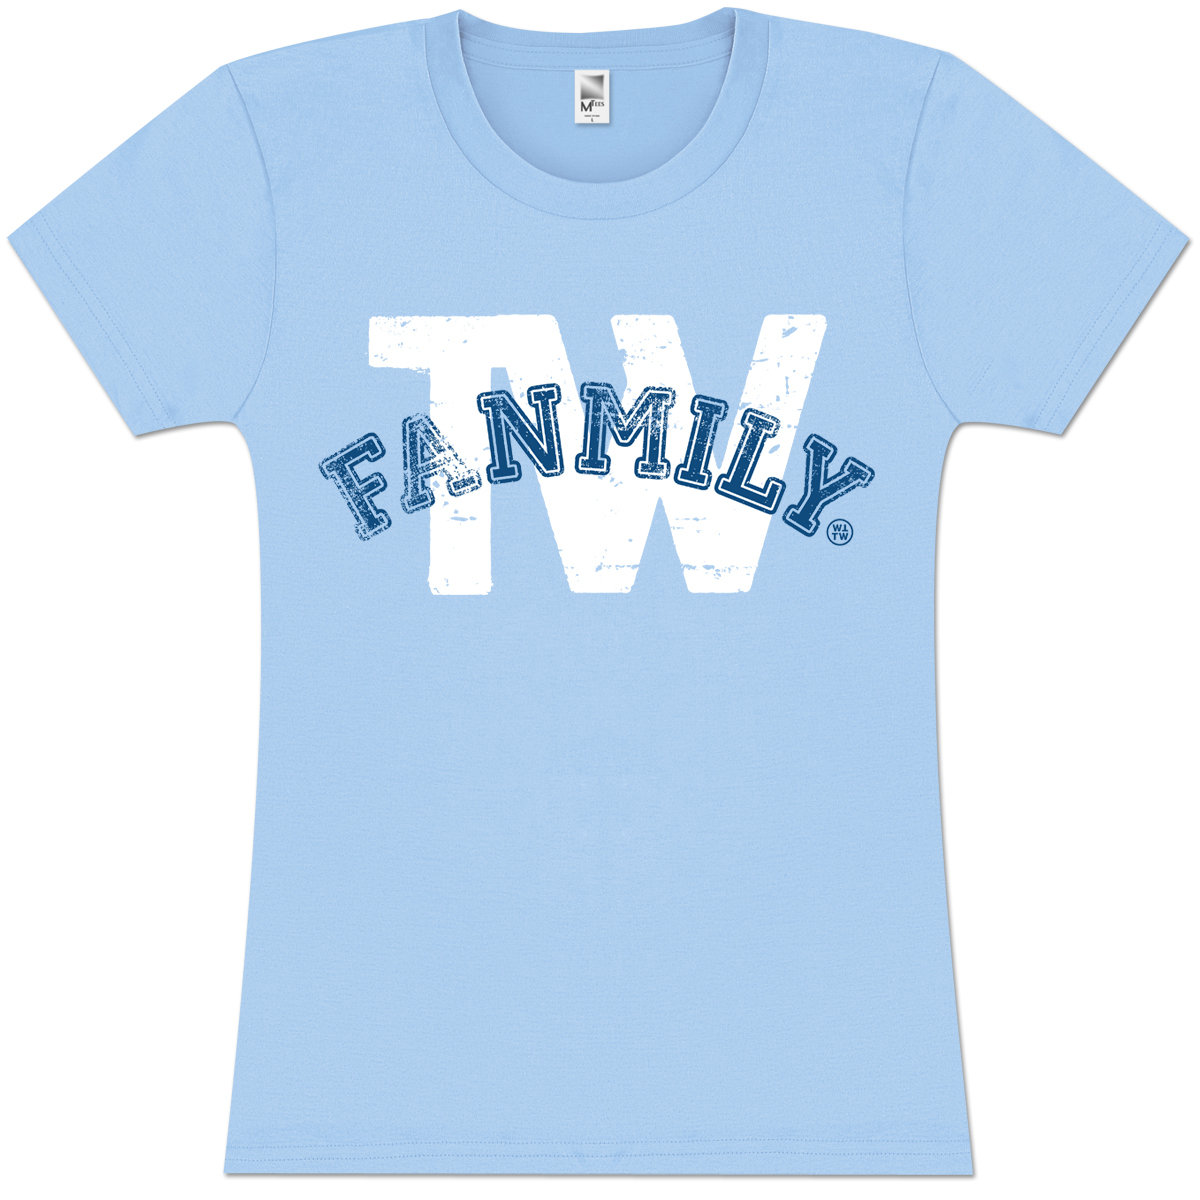 The Wanted Fanmily Babydoll T-Shirt